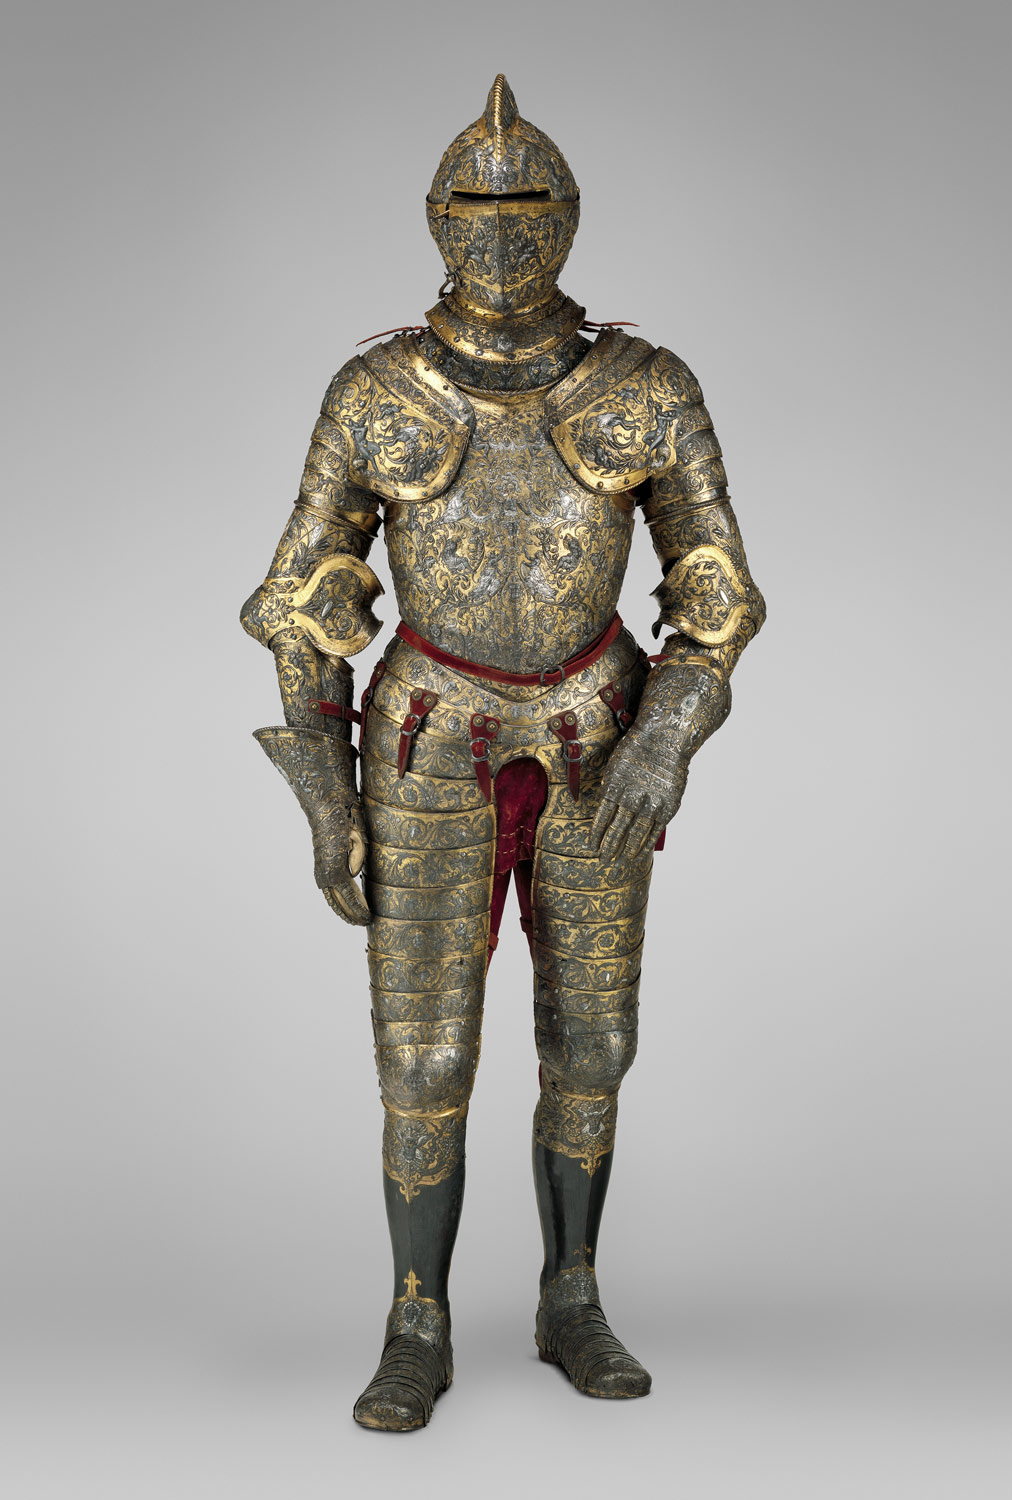 Armor for Henry II of France